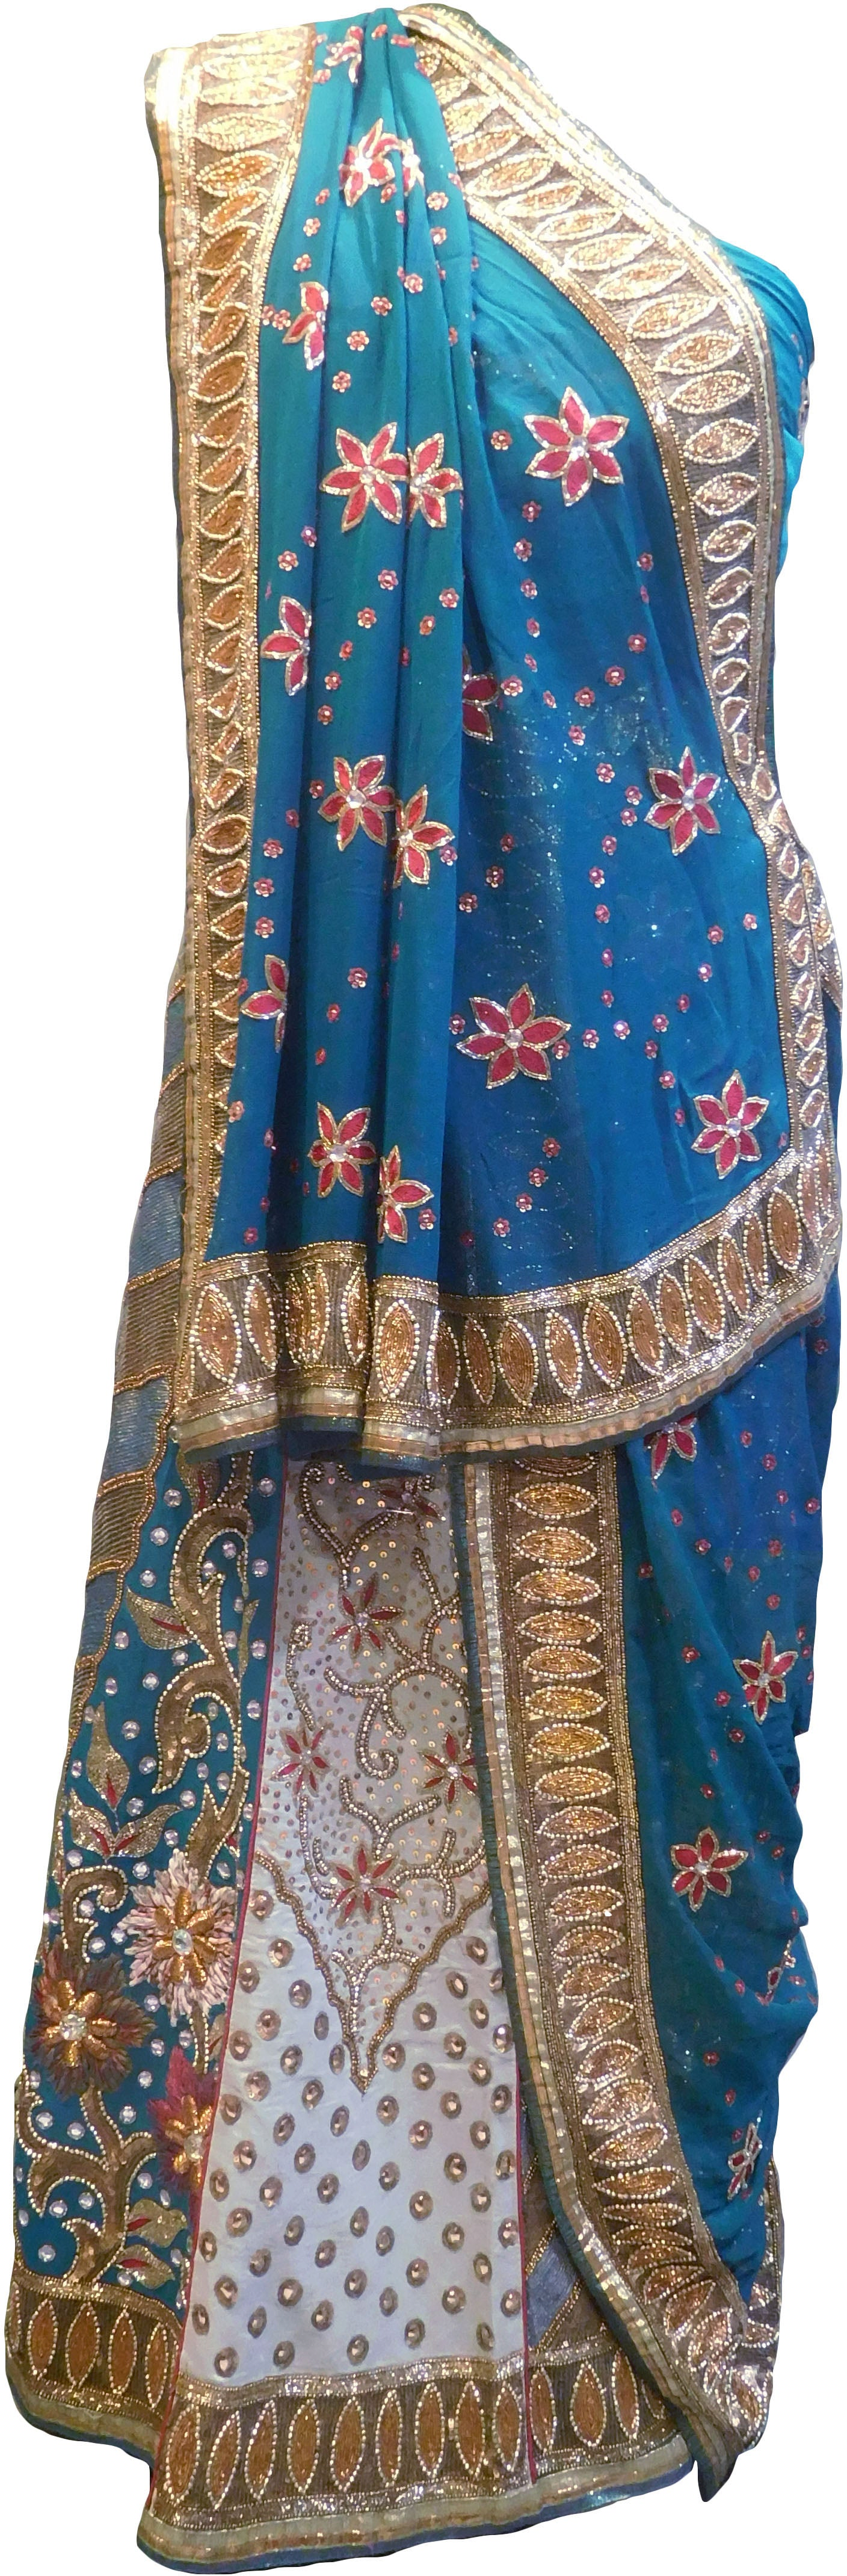 SMSAREE Turquoise & Cream Designer Wedding Partywear Pure Georgette Cutdana Zari Thread Beads Bullion & Stone Hand Embroidery Work Bridal Lahenga Dupatta Ghaghra Choli Bari Ki Til With Blouse Piece LAC547